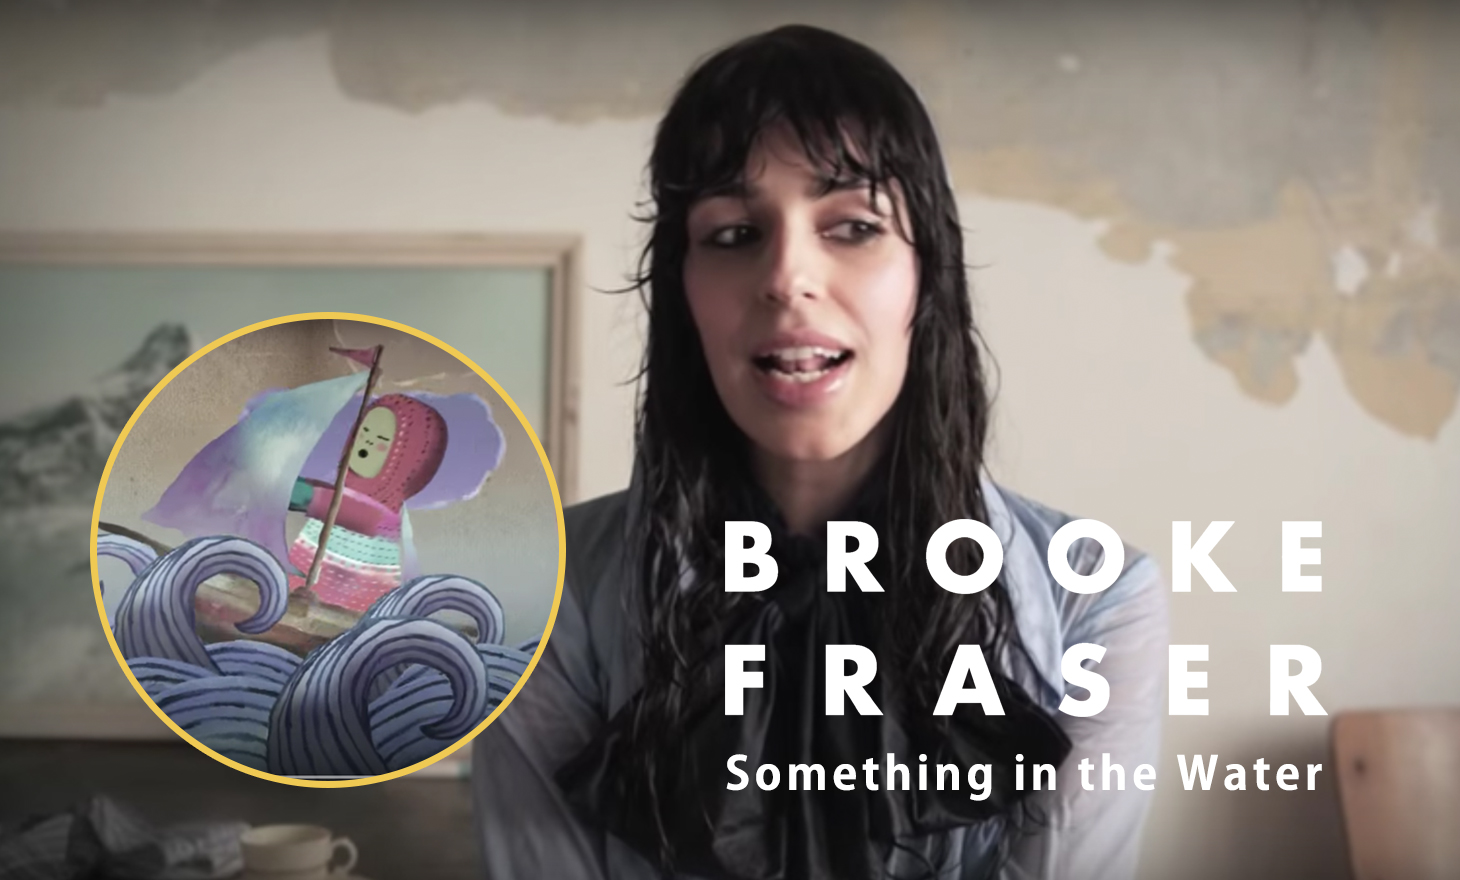 Brooke Fraser(ブルック・フレイザー): Something In The Water